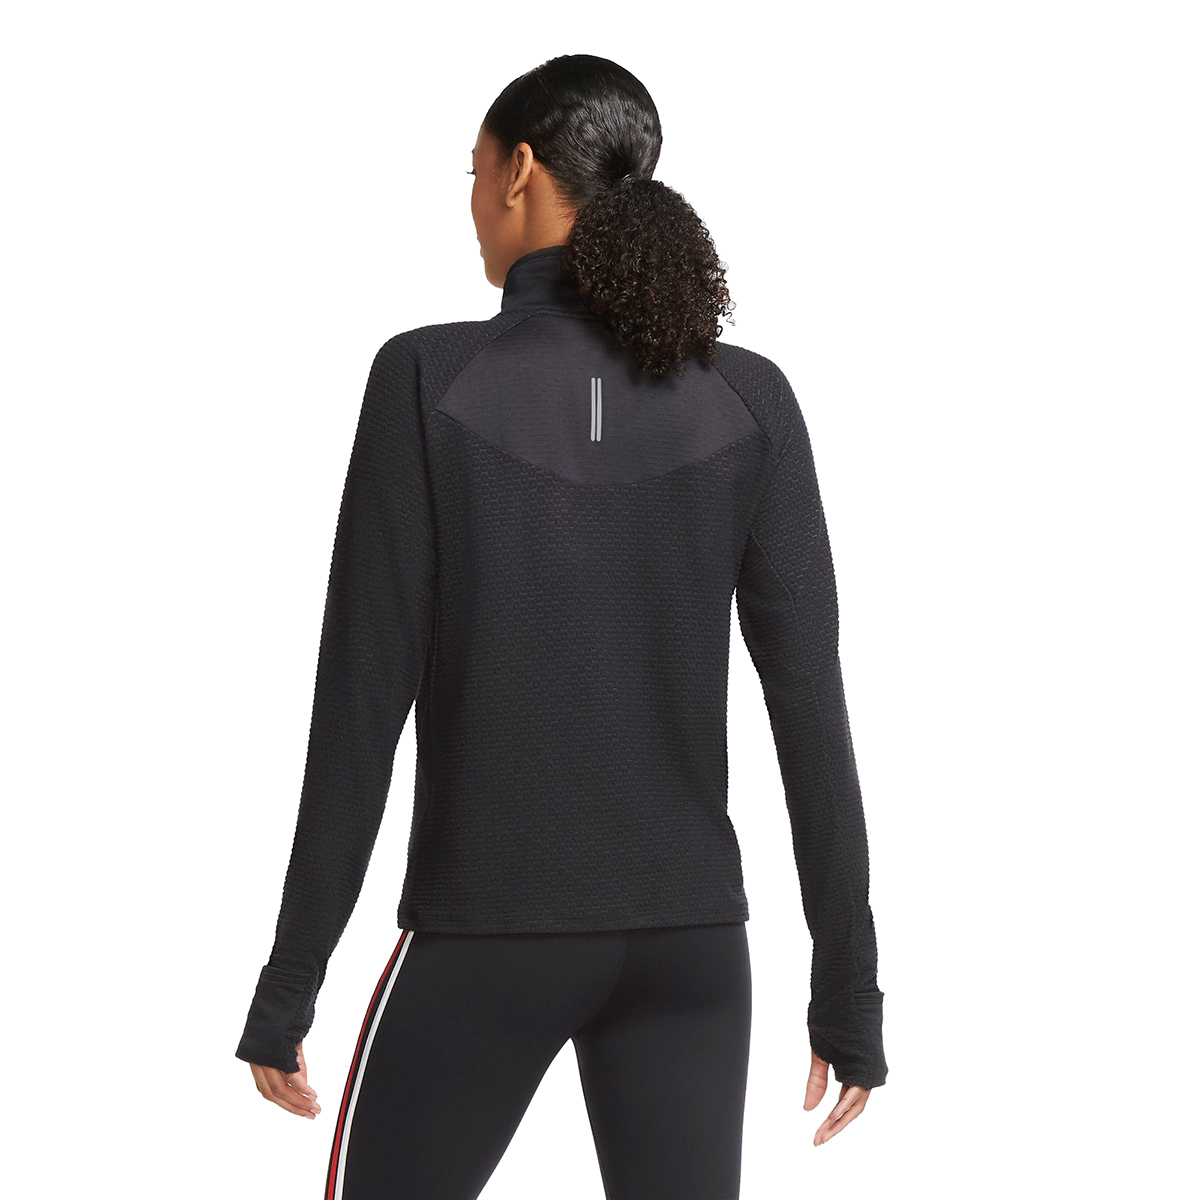 Women's Nike Sphere Half Zip Long Sleeve Shirt, , large, image 2